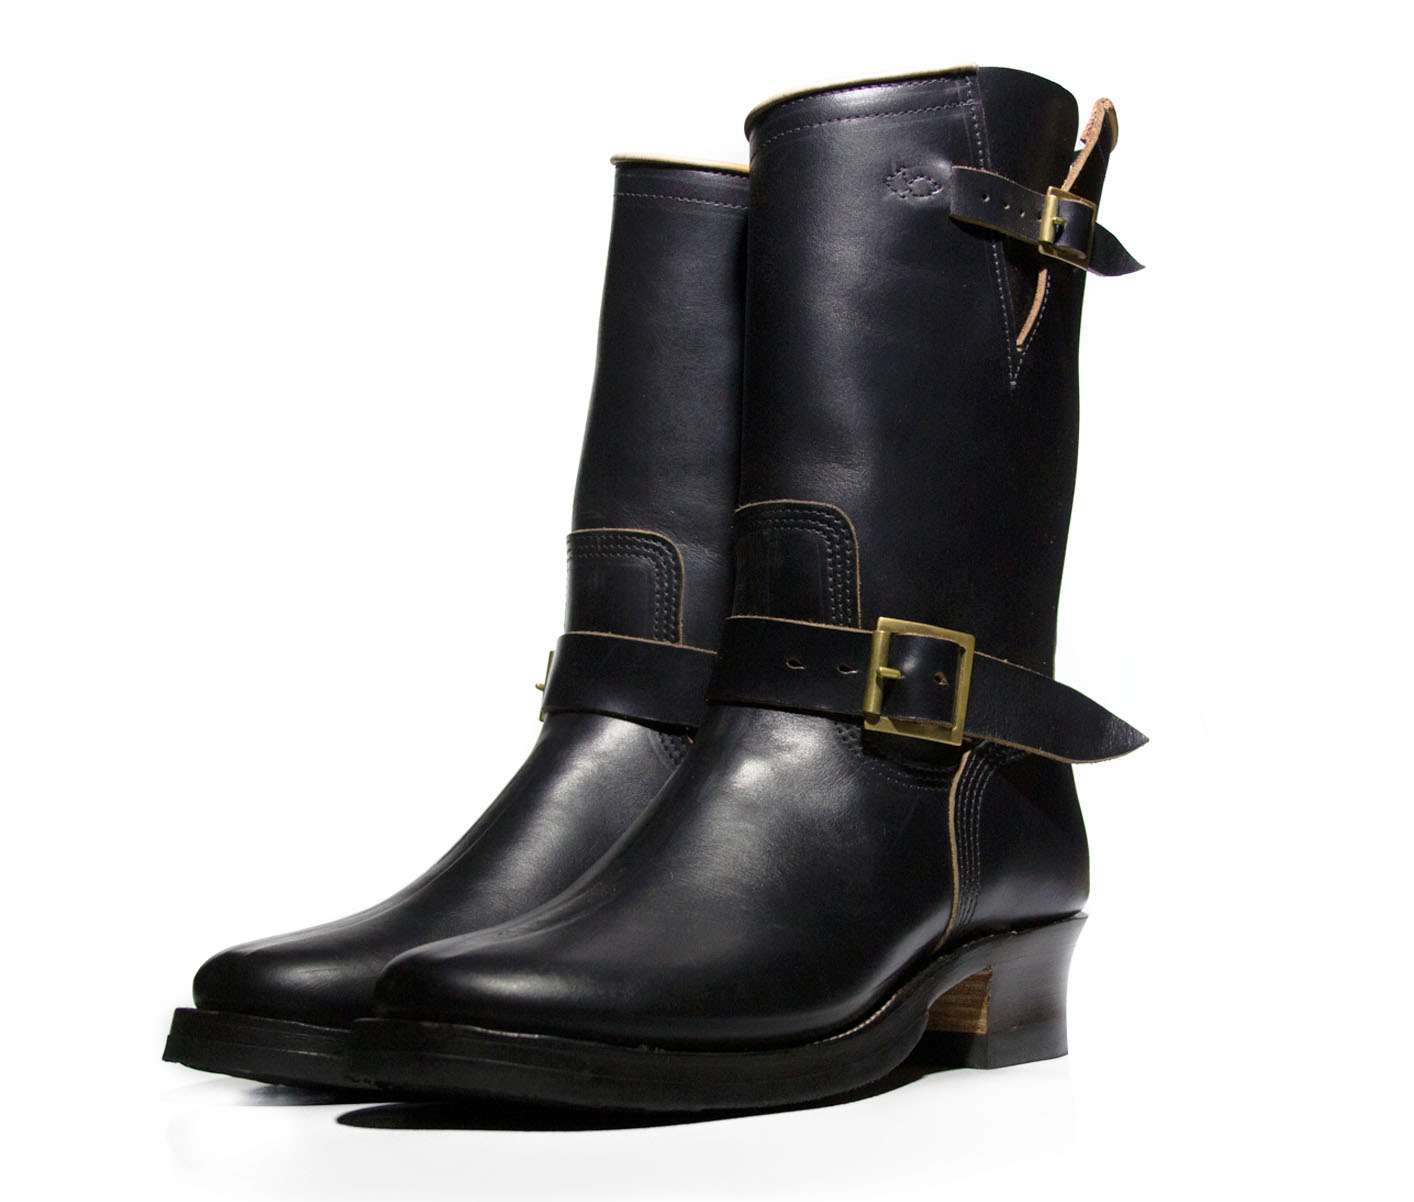 Black CXL Horsehide Engineer Boots Limited Edition  (click for more info)